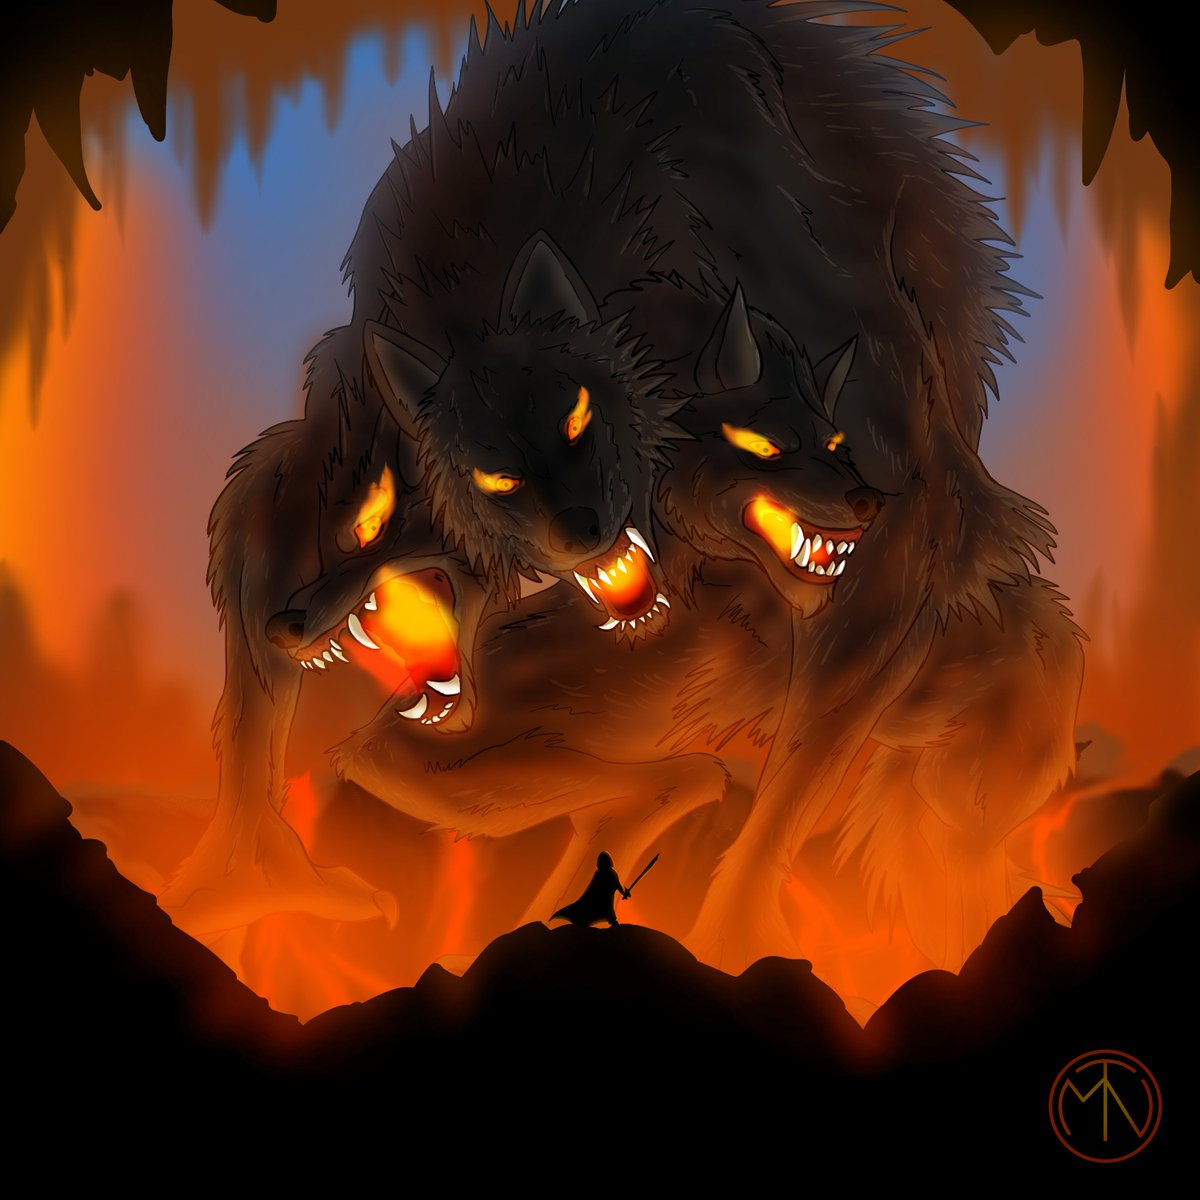 Cerberus pour continuer le #inktitan  #drawing #digitalart #illustration #Cerberus https://t.co/fBxZqnnvHV